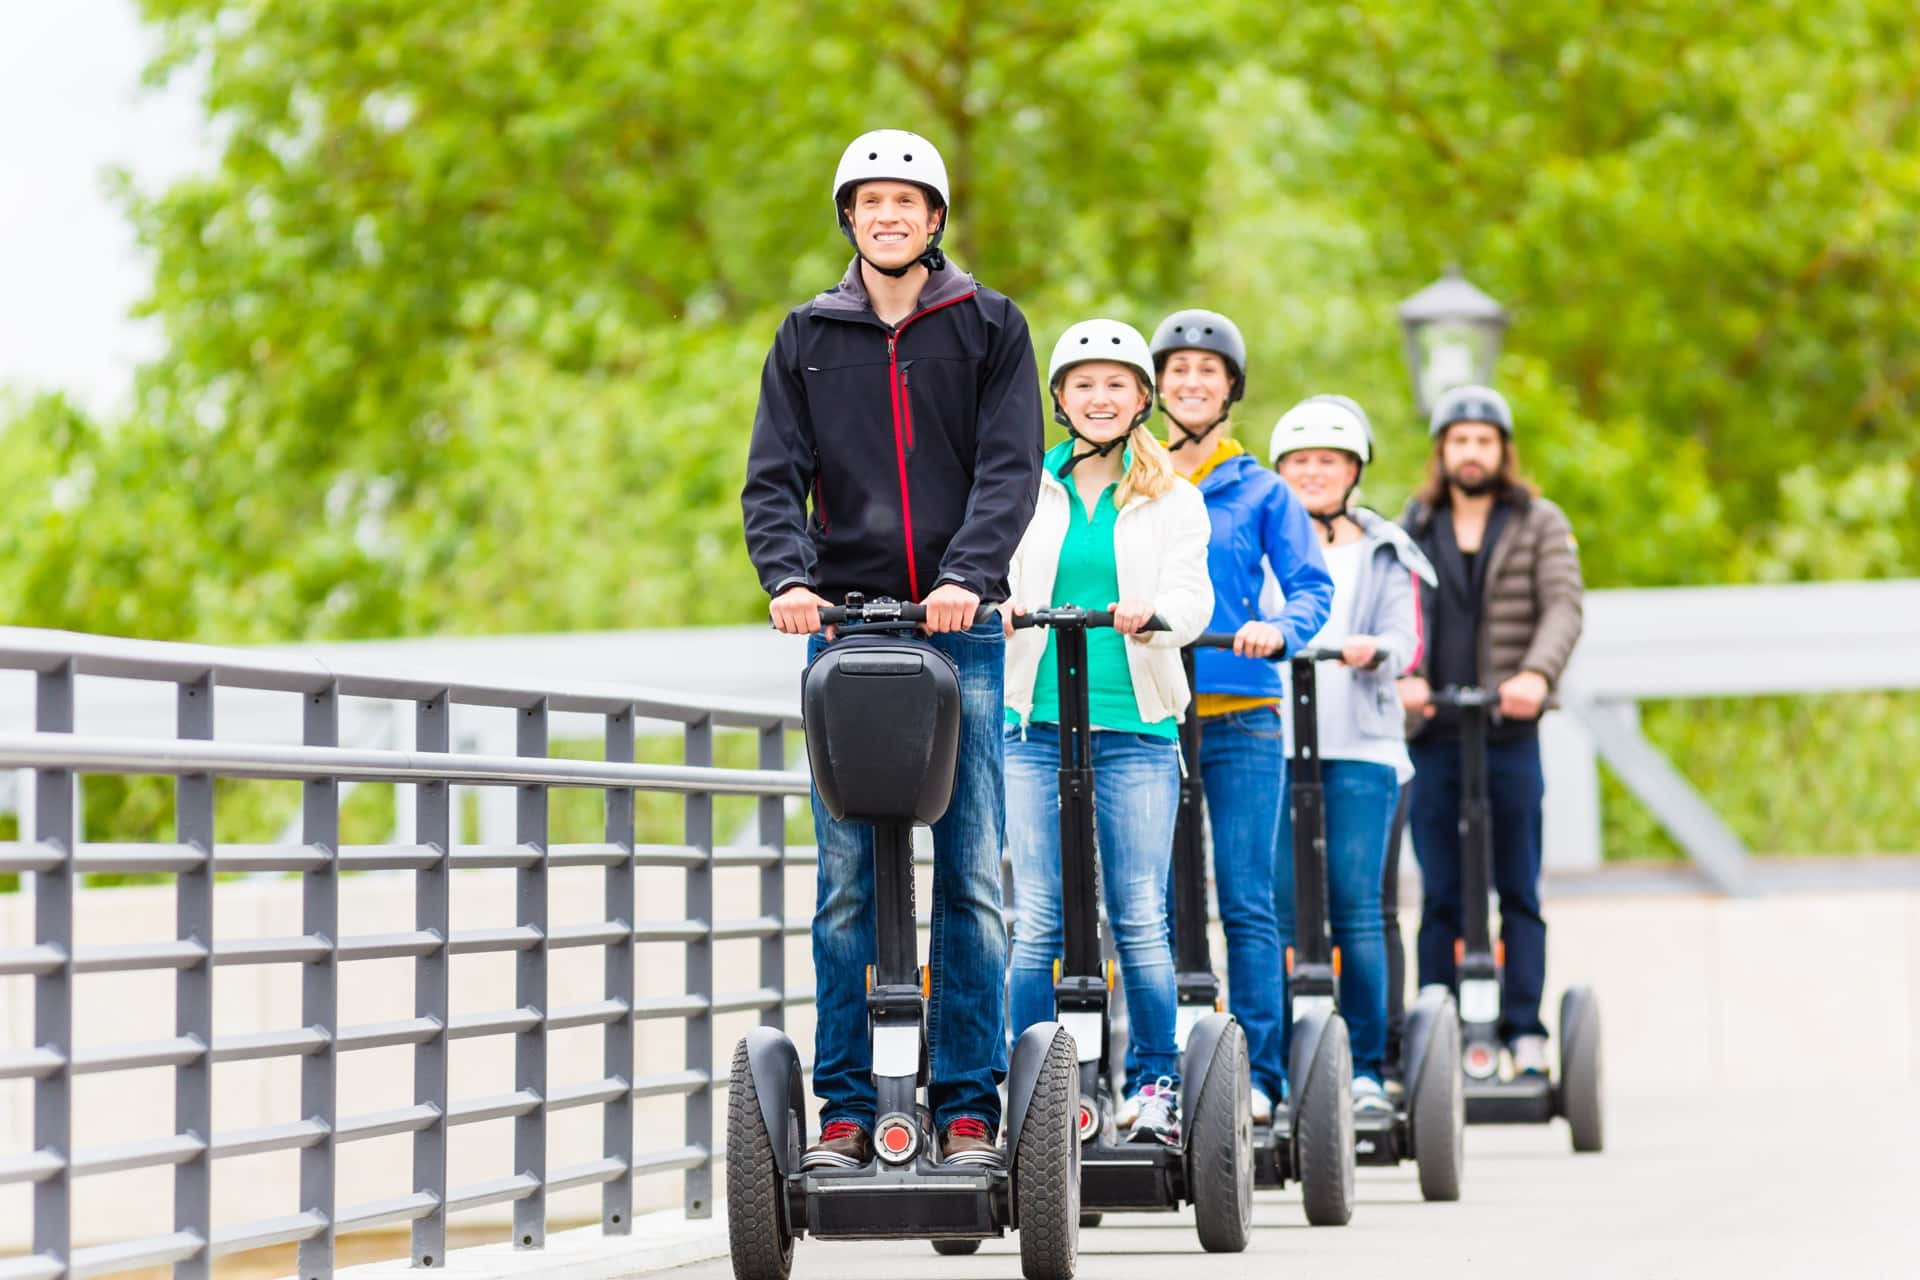 New Restrictions Underway for Southern California Segway Companies